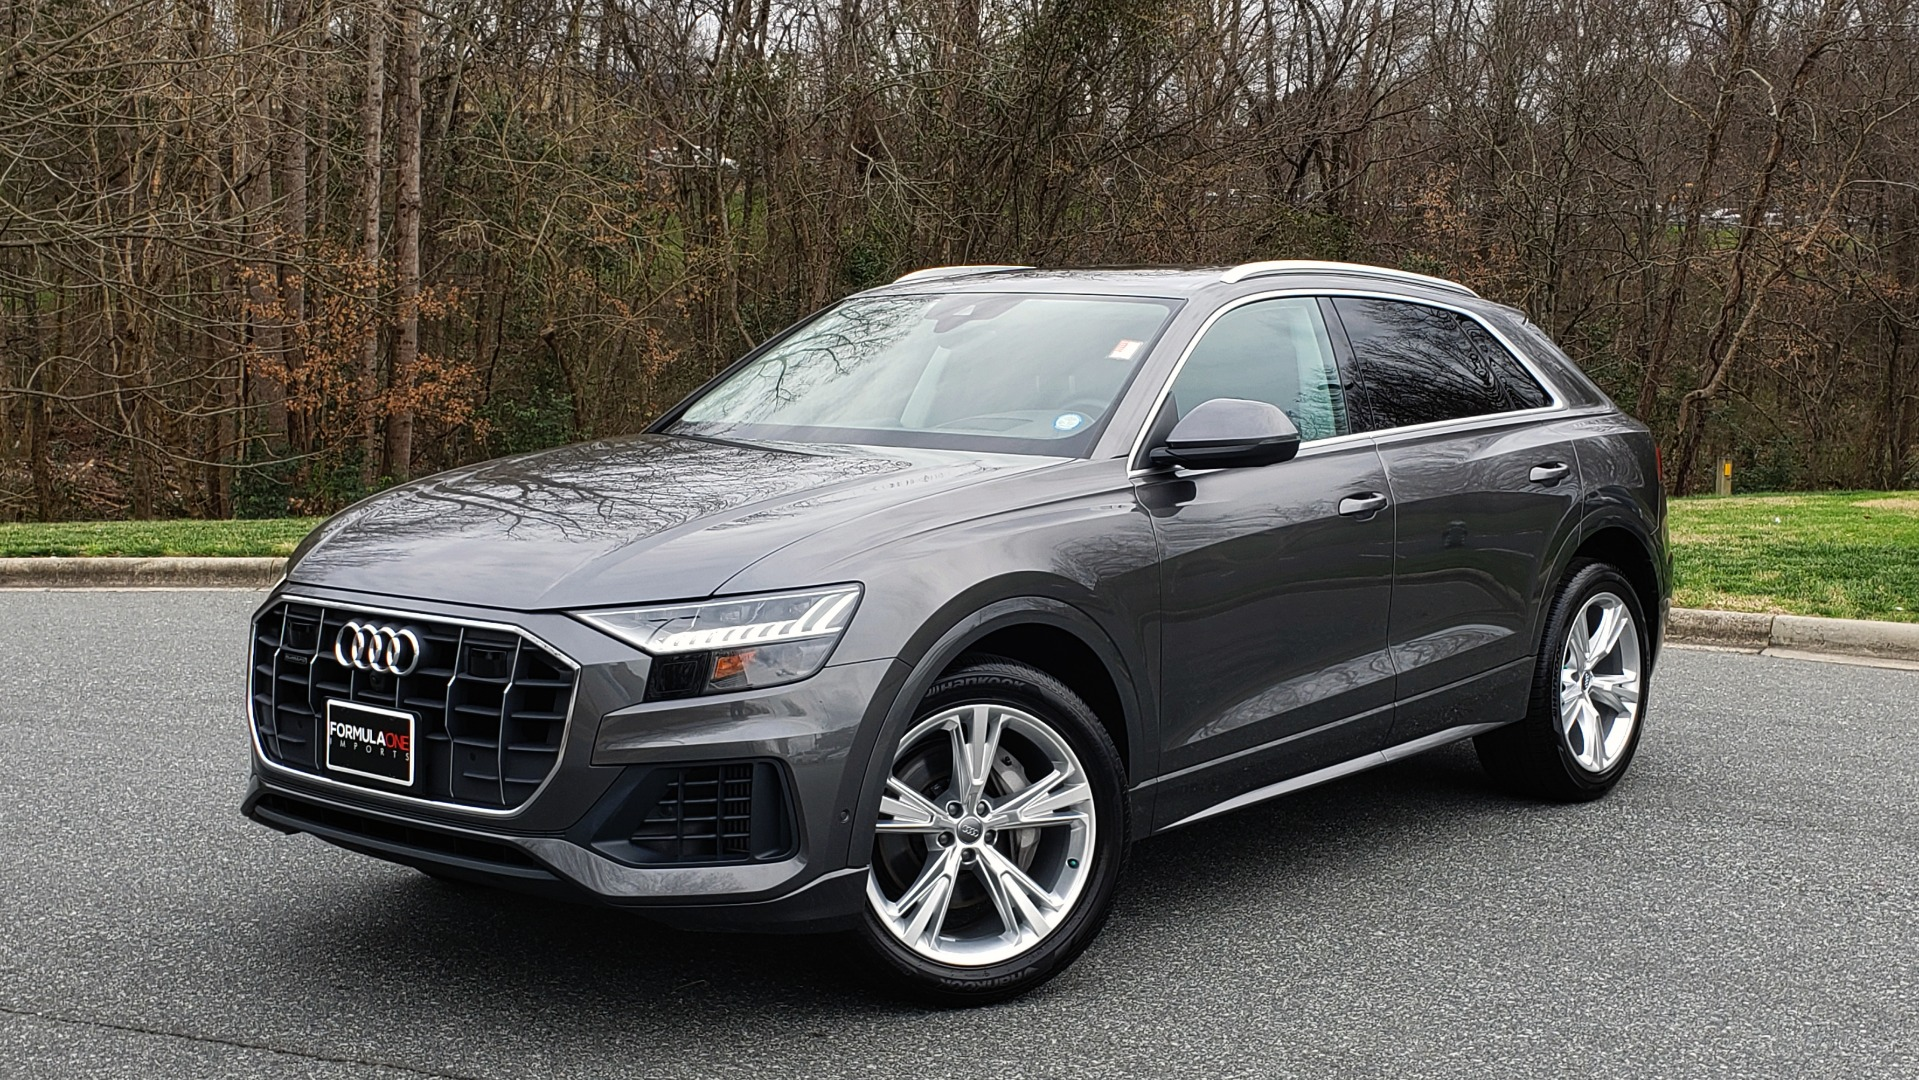 Used 2019 Audi Q8 PRESTIGE 3.0 / NAV / SUNROOF / BO SND / COLD WTHR / REARVIEW for sale Sold at Formula Imports in Charlotte NC 28227 1